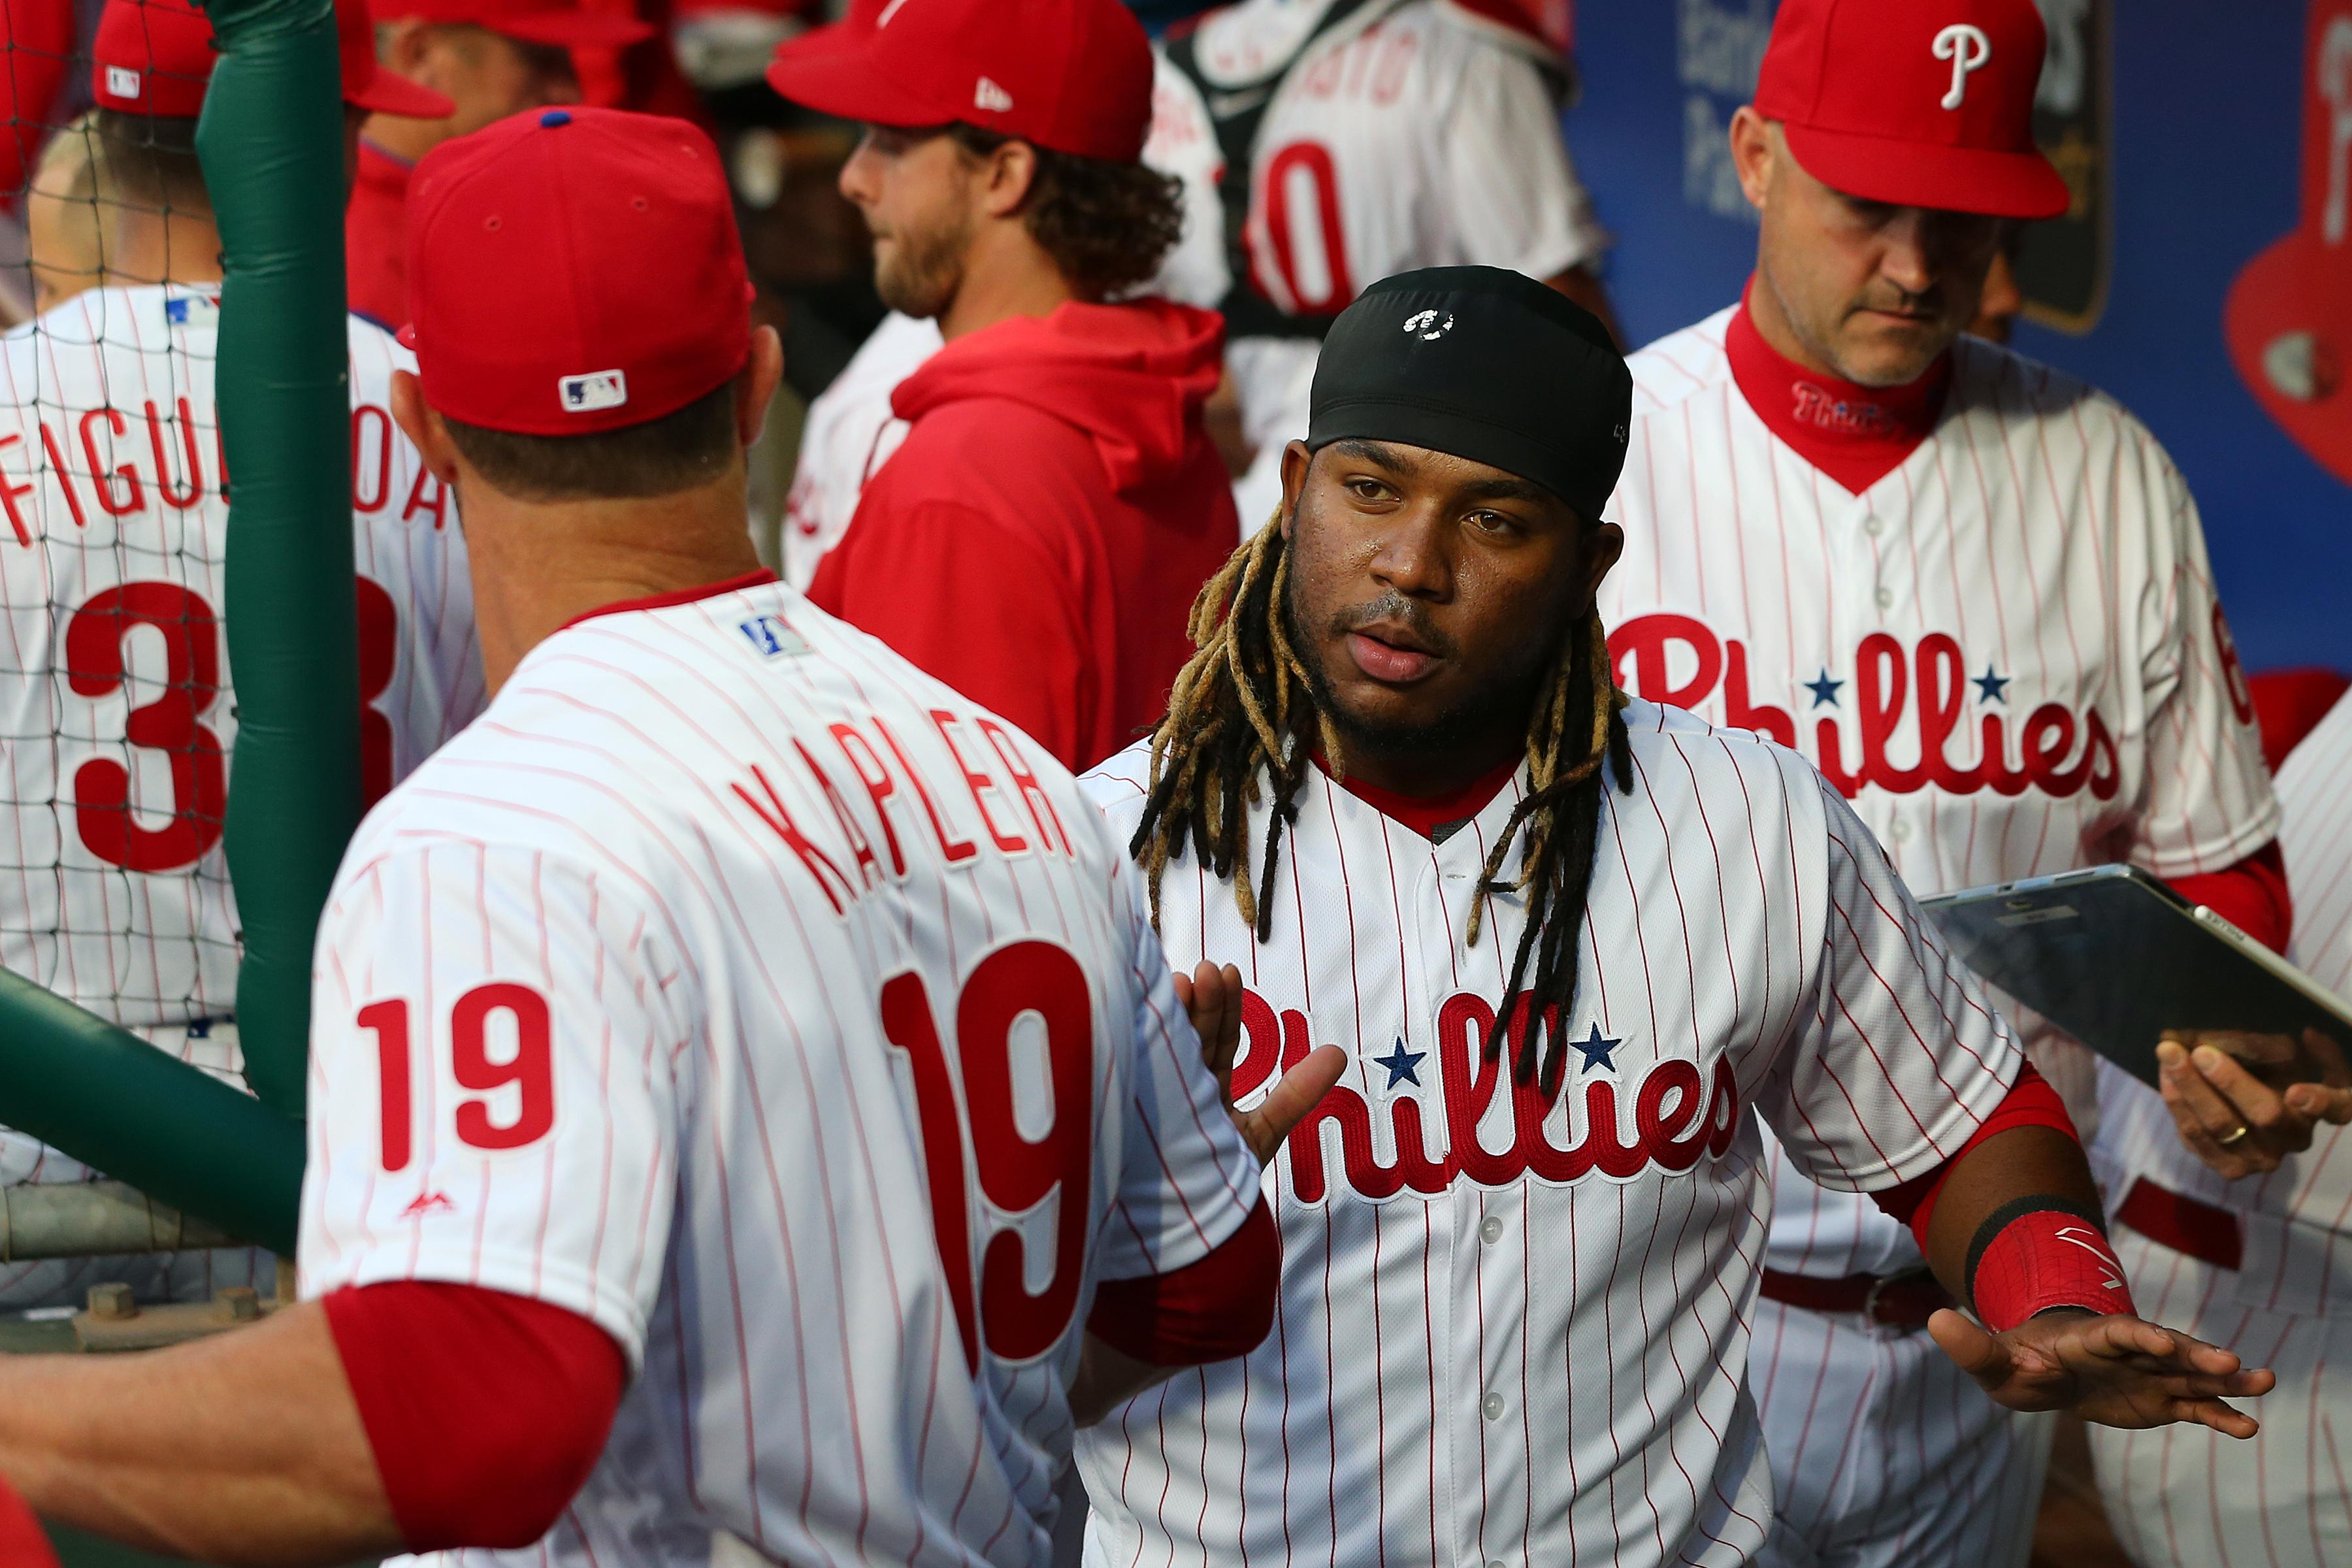 Gabe Kapler benches Maikel Franco for lack of hustle on ground ball with bases loaded